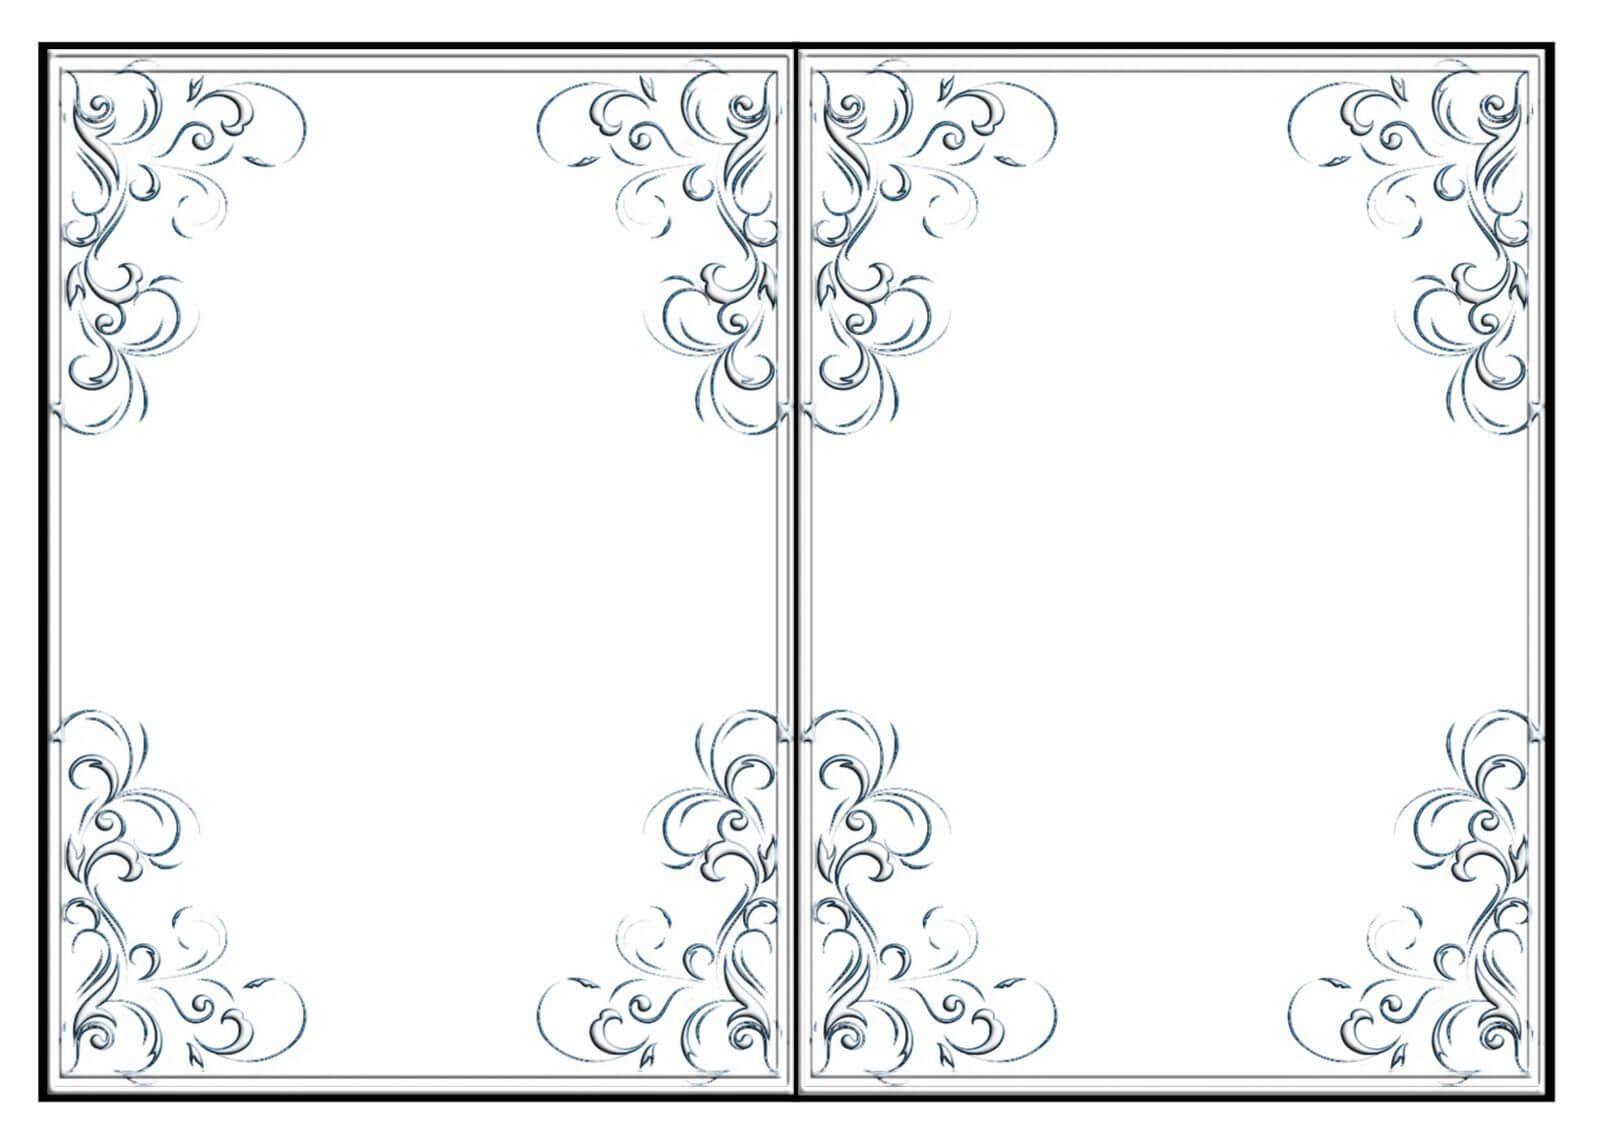 Fold Card Template Imnettle.free Printable Quarter Fold Card Within Quarter Fold Card Template